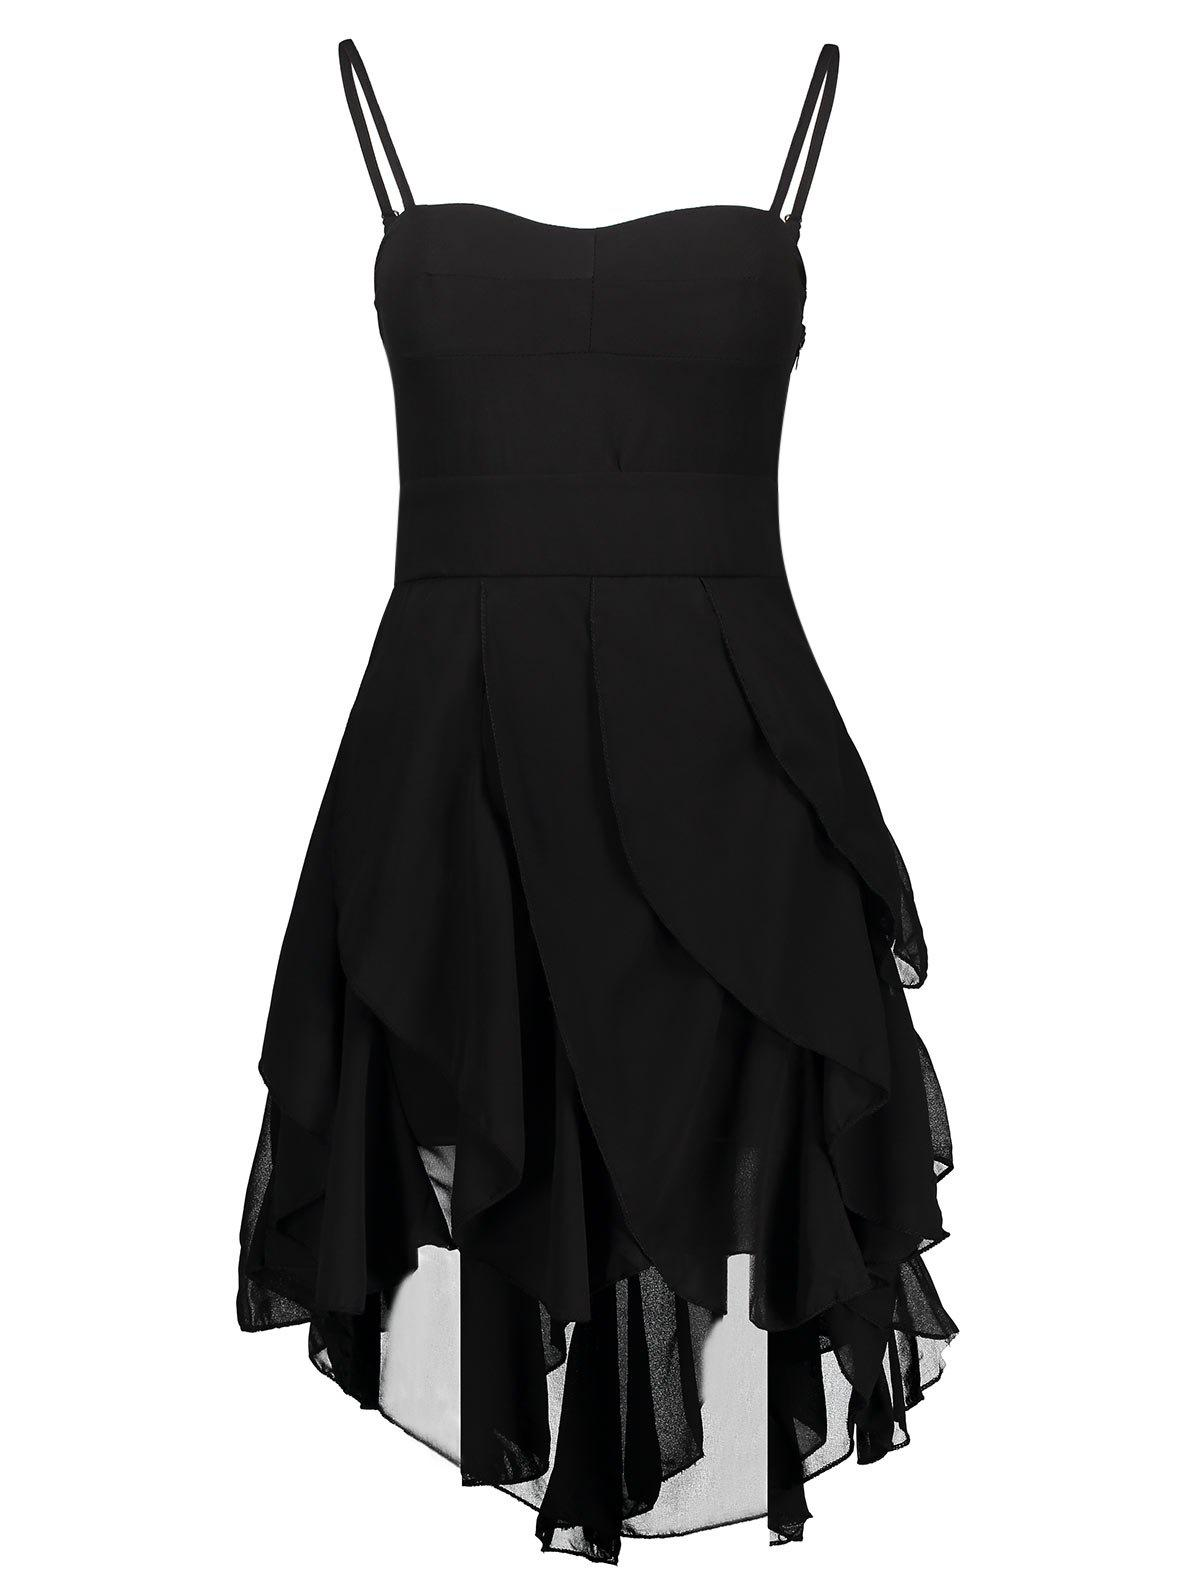 Vintage Spaghetti Strap Asymmetrical Solid Color Gothic Dresses - BLACK XL